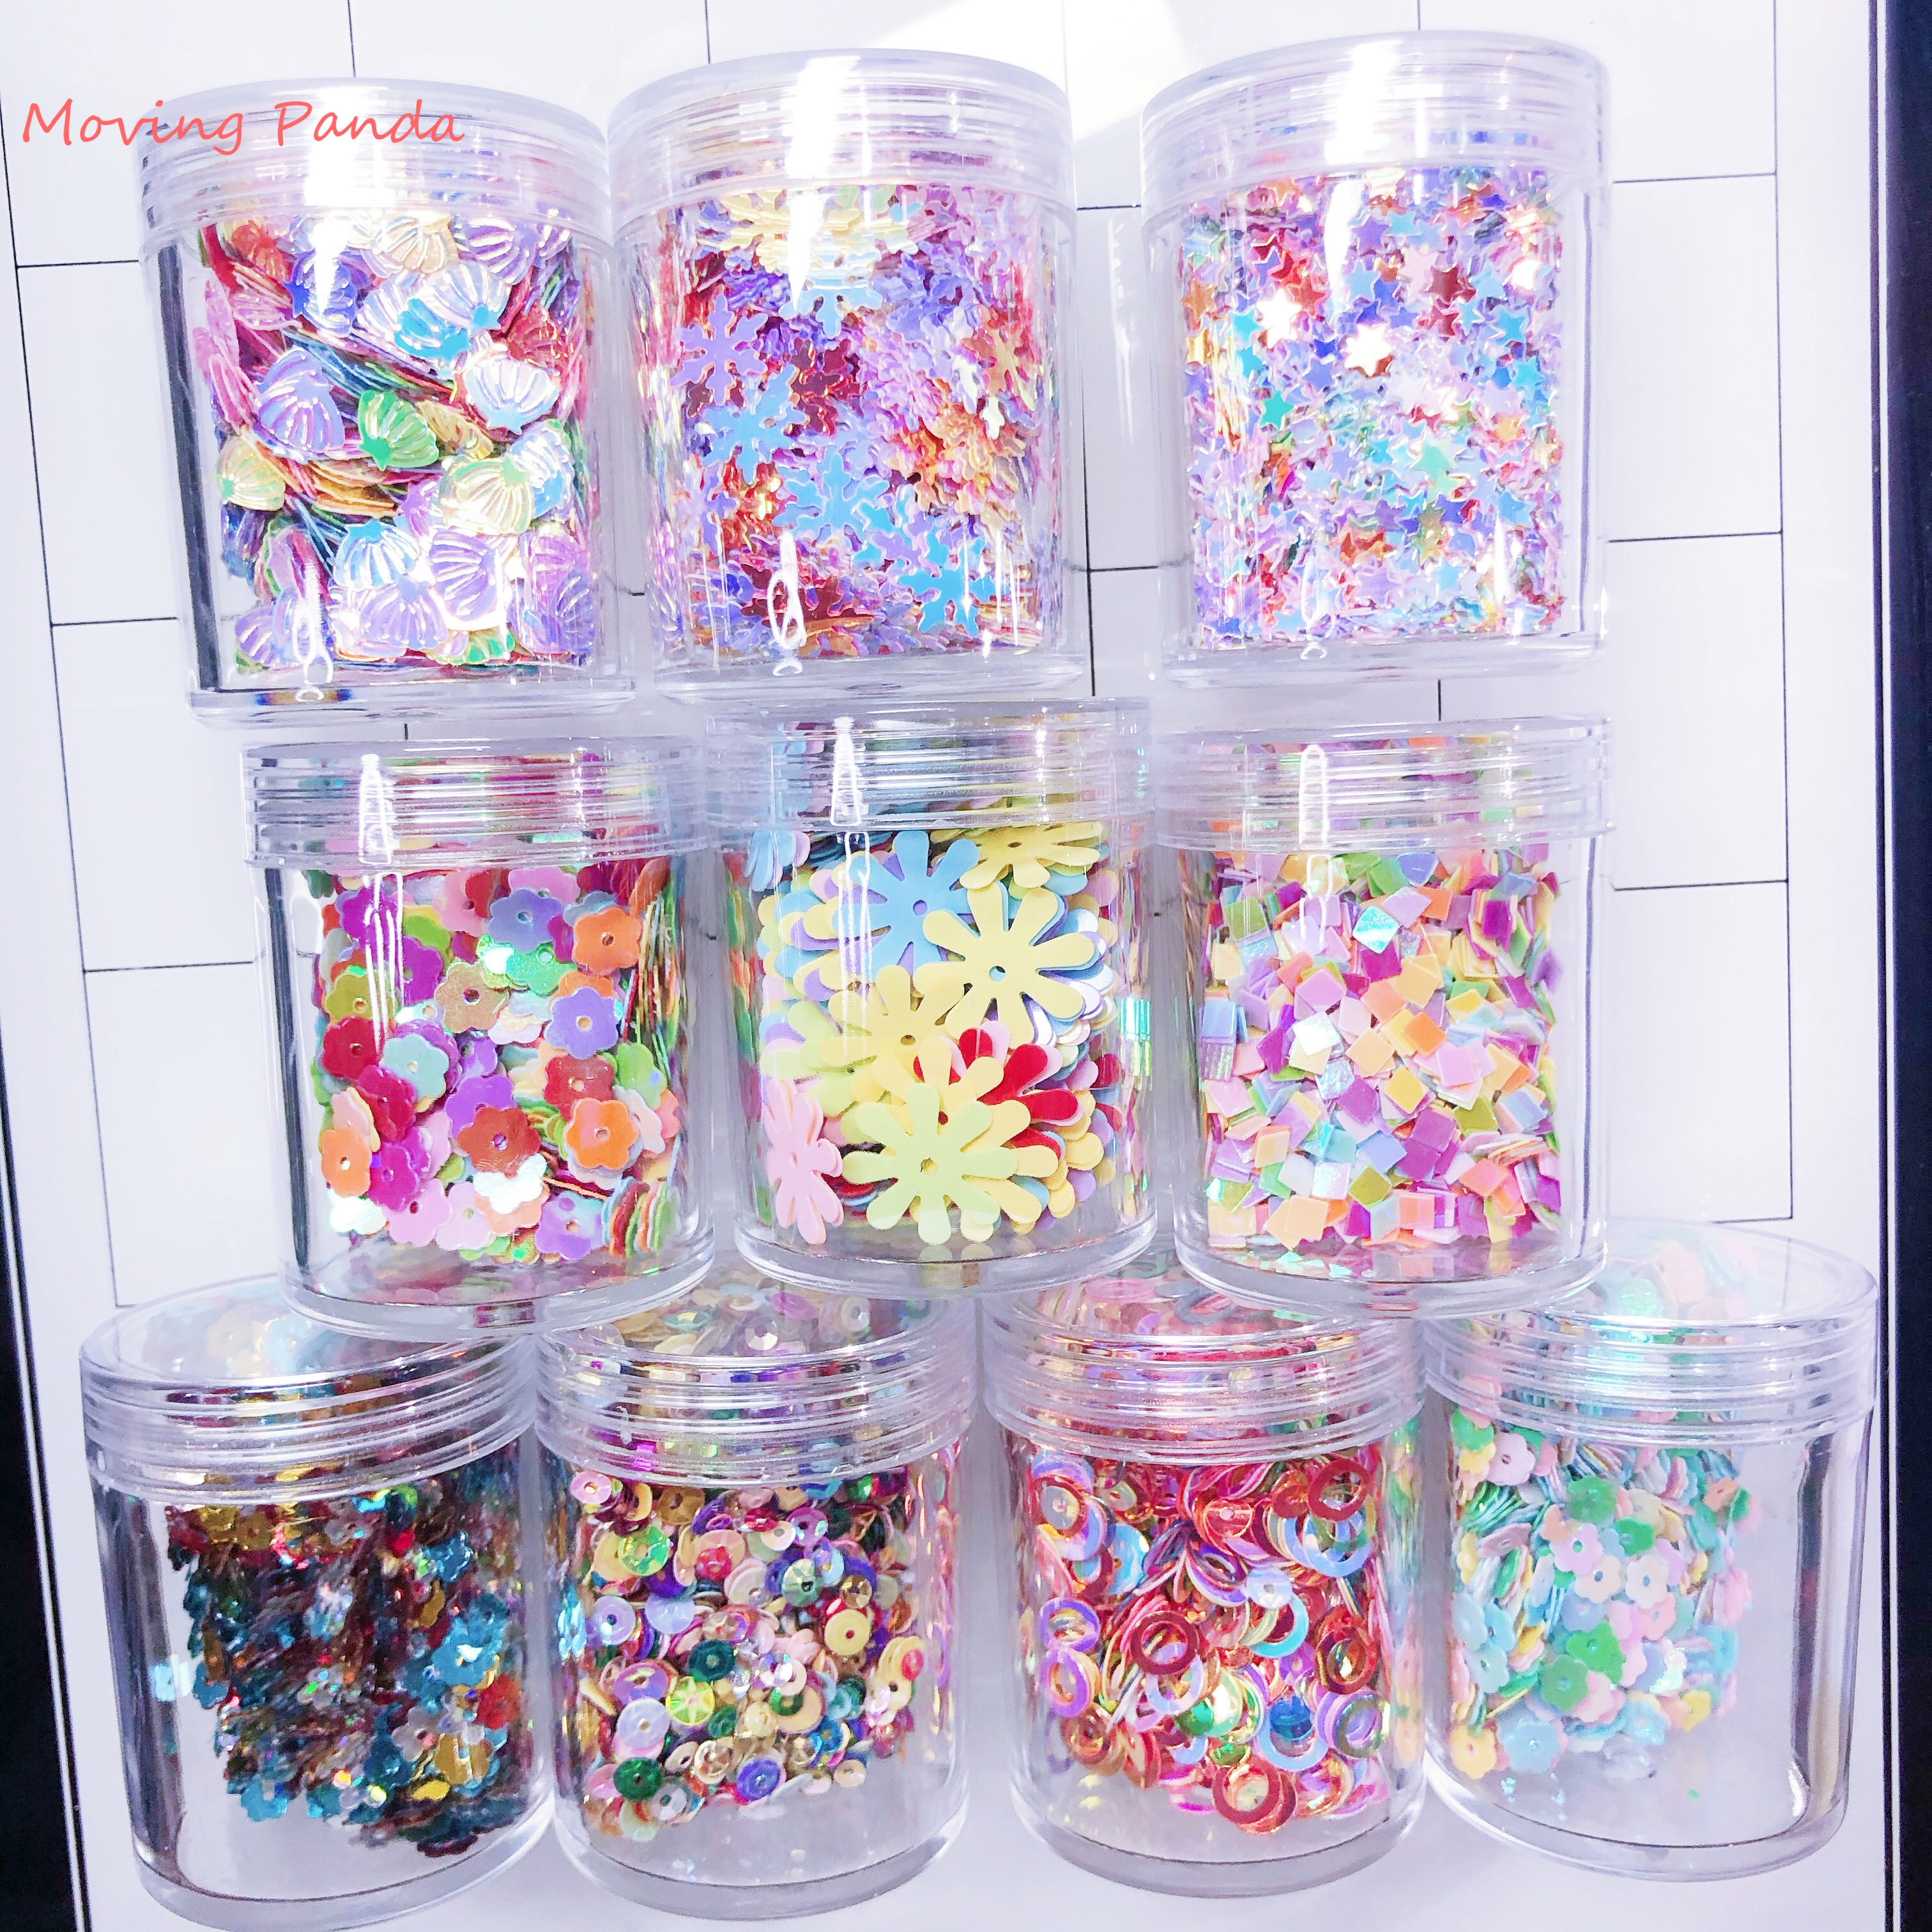 10g/bottle Sequins Sparking Glitter Papercard Decor Shaking Card Sequins Accessories Cutting Dies Stamps Embossing Decoration